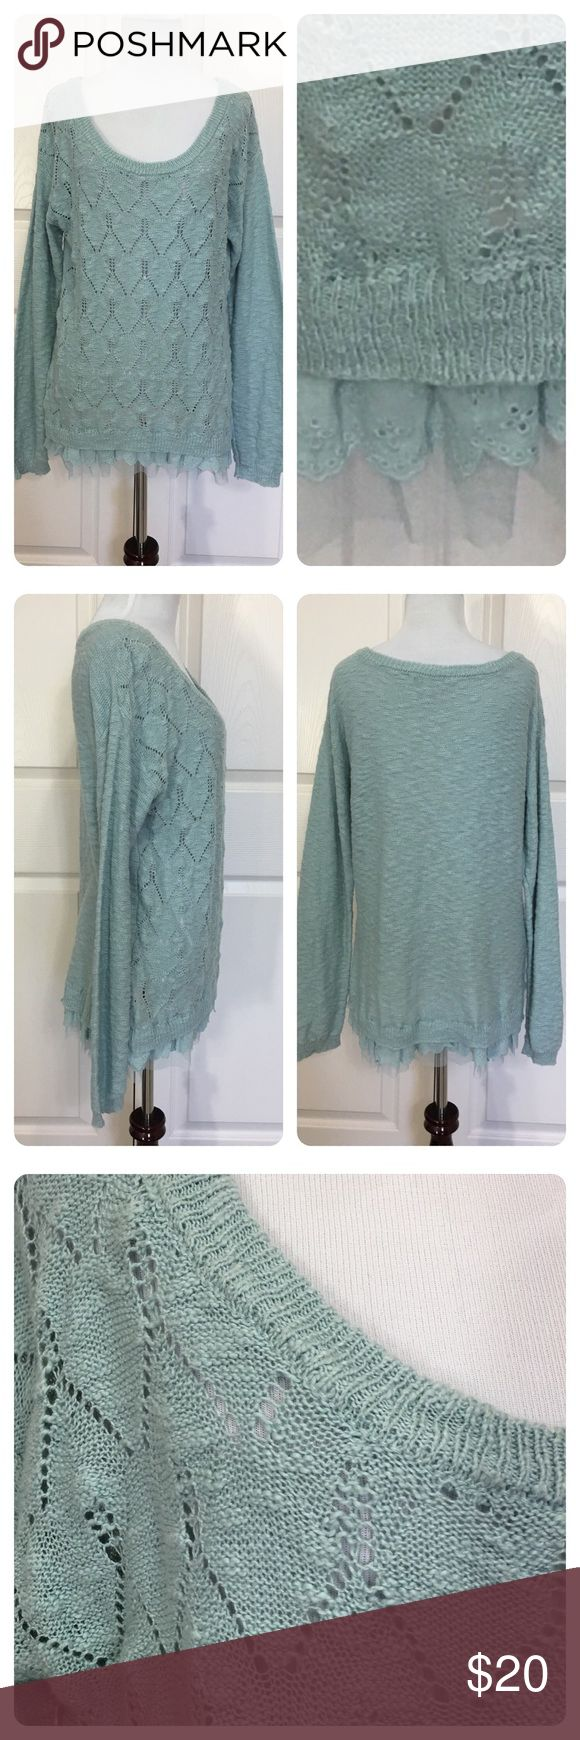 American Rag boho chic sweater American Rag light blue sweater with lace and netting trim. Pretty feminine boho chic sweater. Great with any colored skinnies. No flaws noted. Light wear. American Rag Sweaters